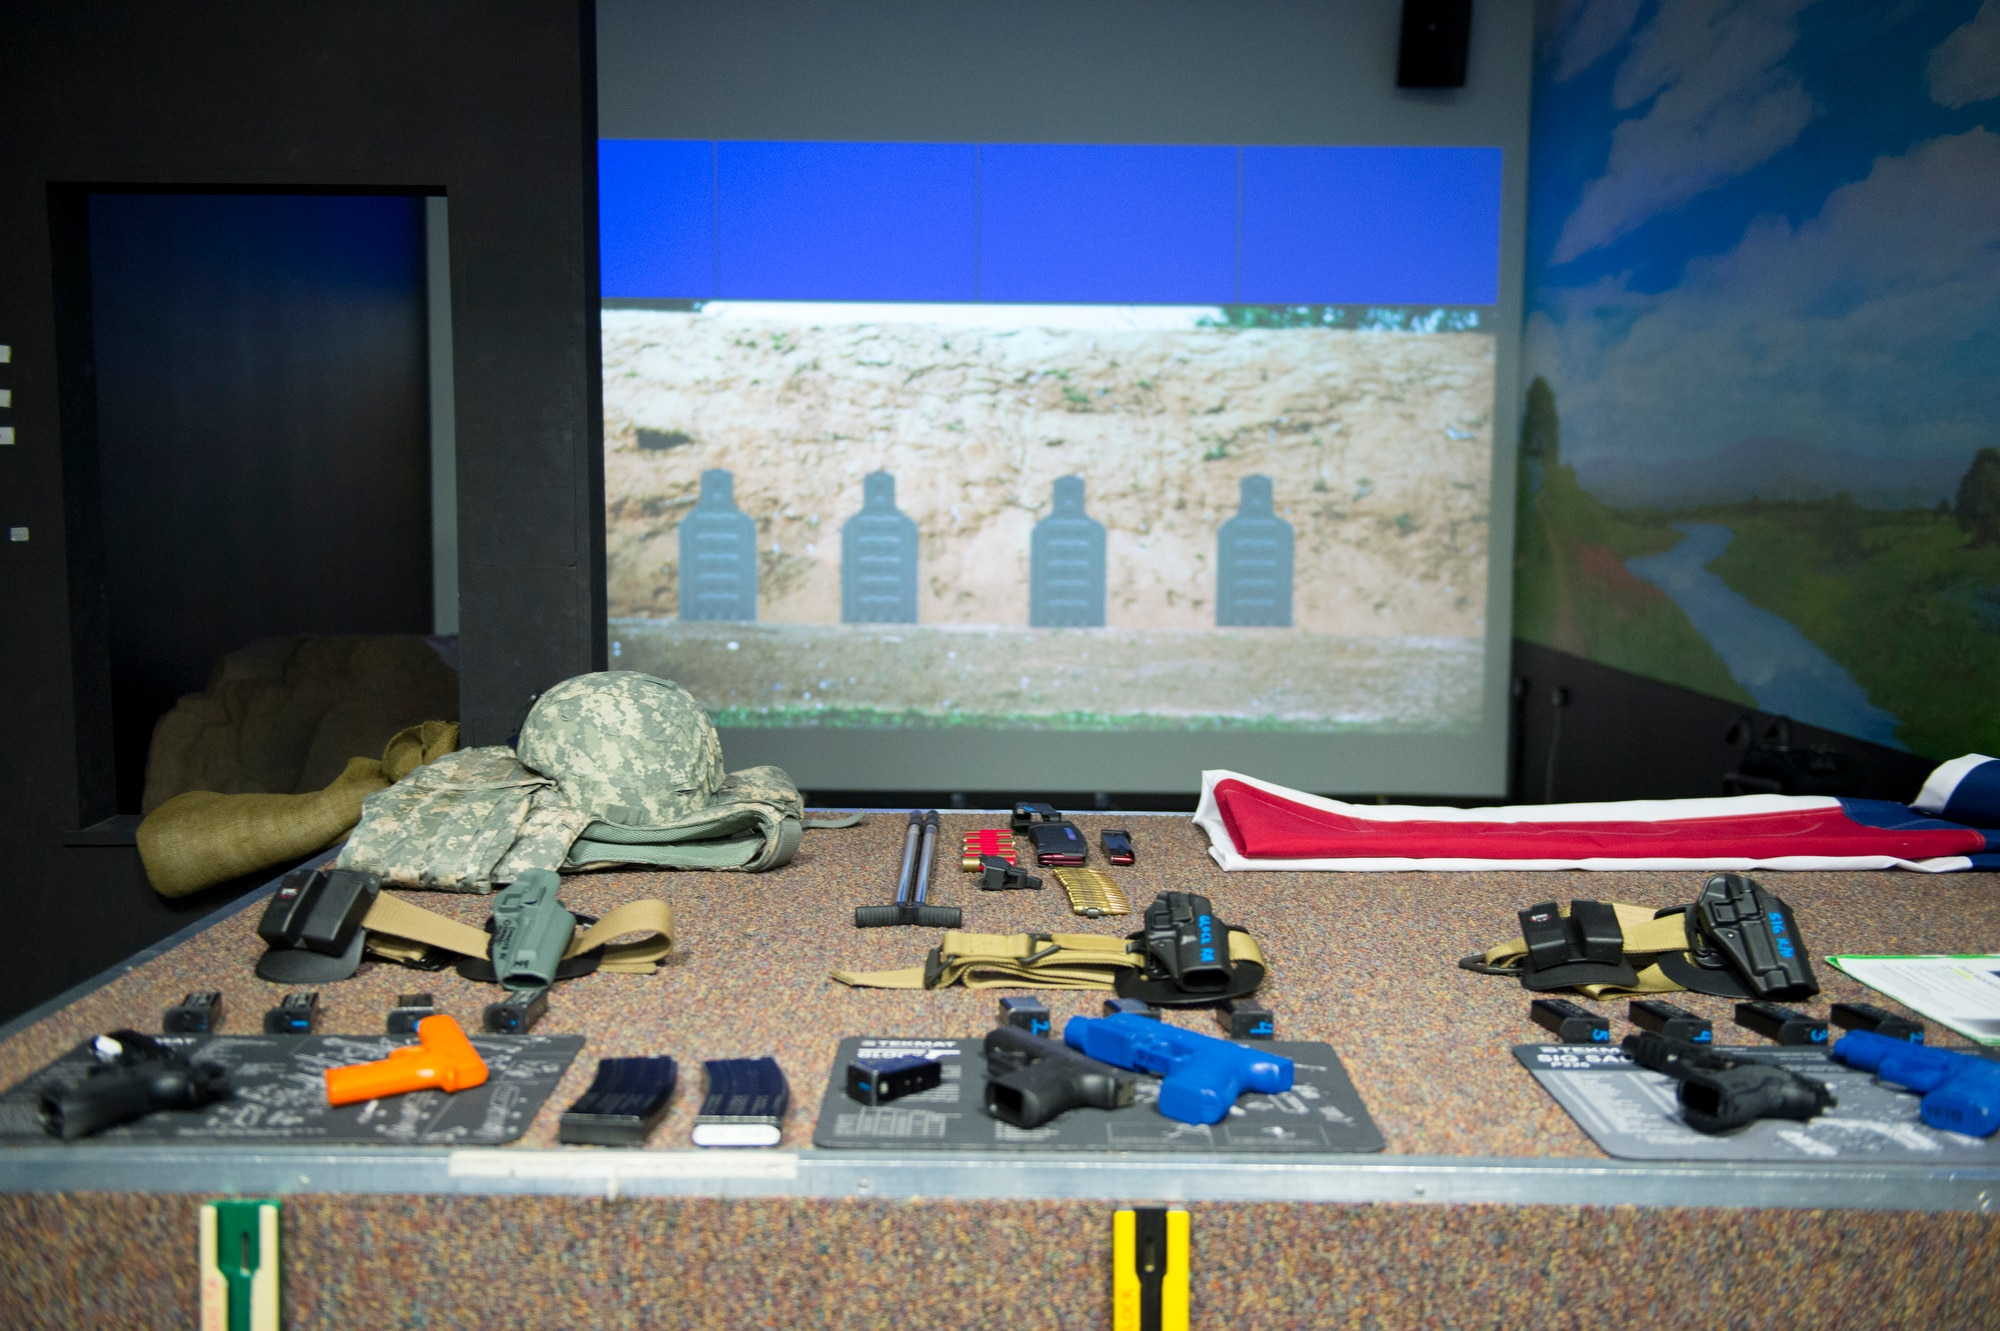 The Center for the Intrepid fire arms simulator provides service members that are recovering from traumatic brain injuries and amputations with a state-of-the-art indoor range on Fort Sam Houston, Texas, Sept. 13, 2016. The simulator provides tethered weapons, without live rounds, compressed nitrogen while simultaneously serving as a practice range for warriors that need the training for potential return to active-duty status. (U.S. Air Force photo/Tech Sgt. Vernon Young Jr.)